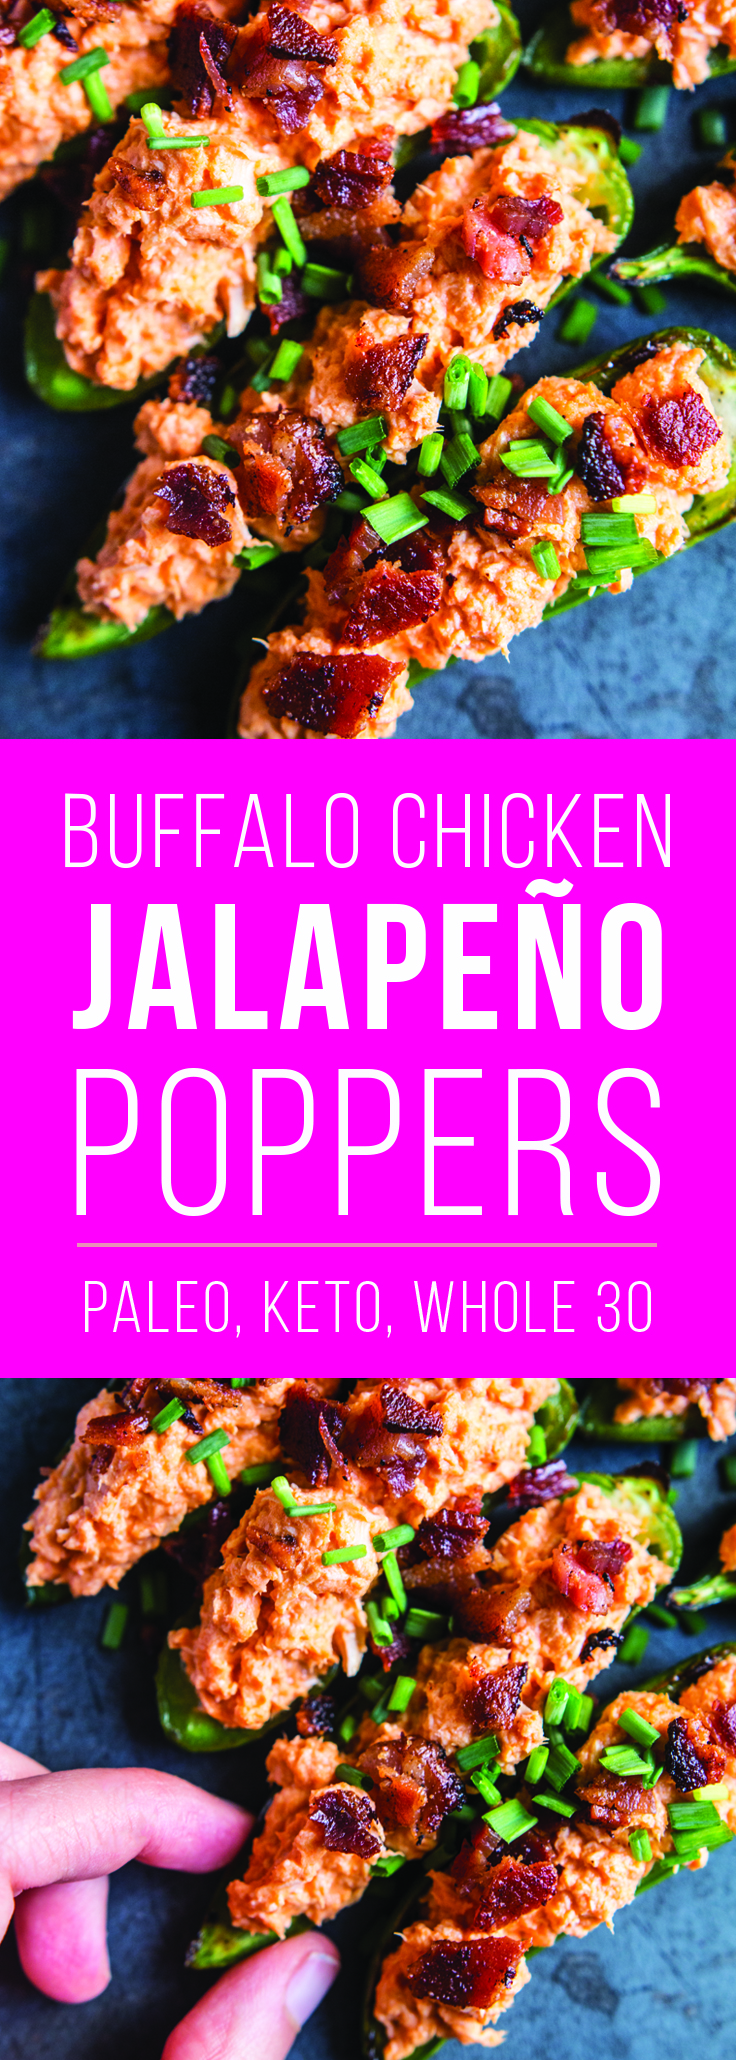 Buffalo Chicken Jalapeño Poppers (keto, paleo) | Fresh Planet Flavor